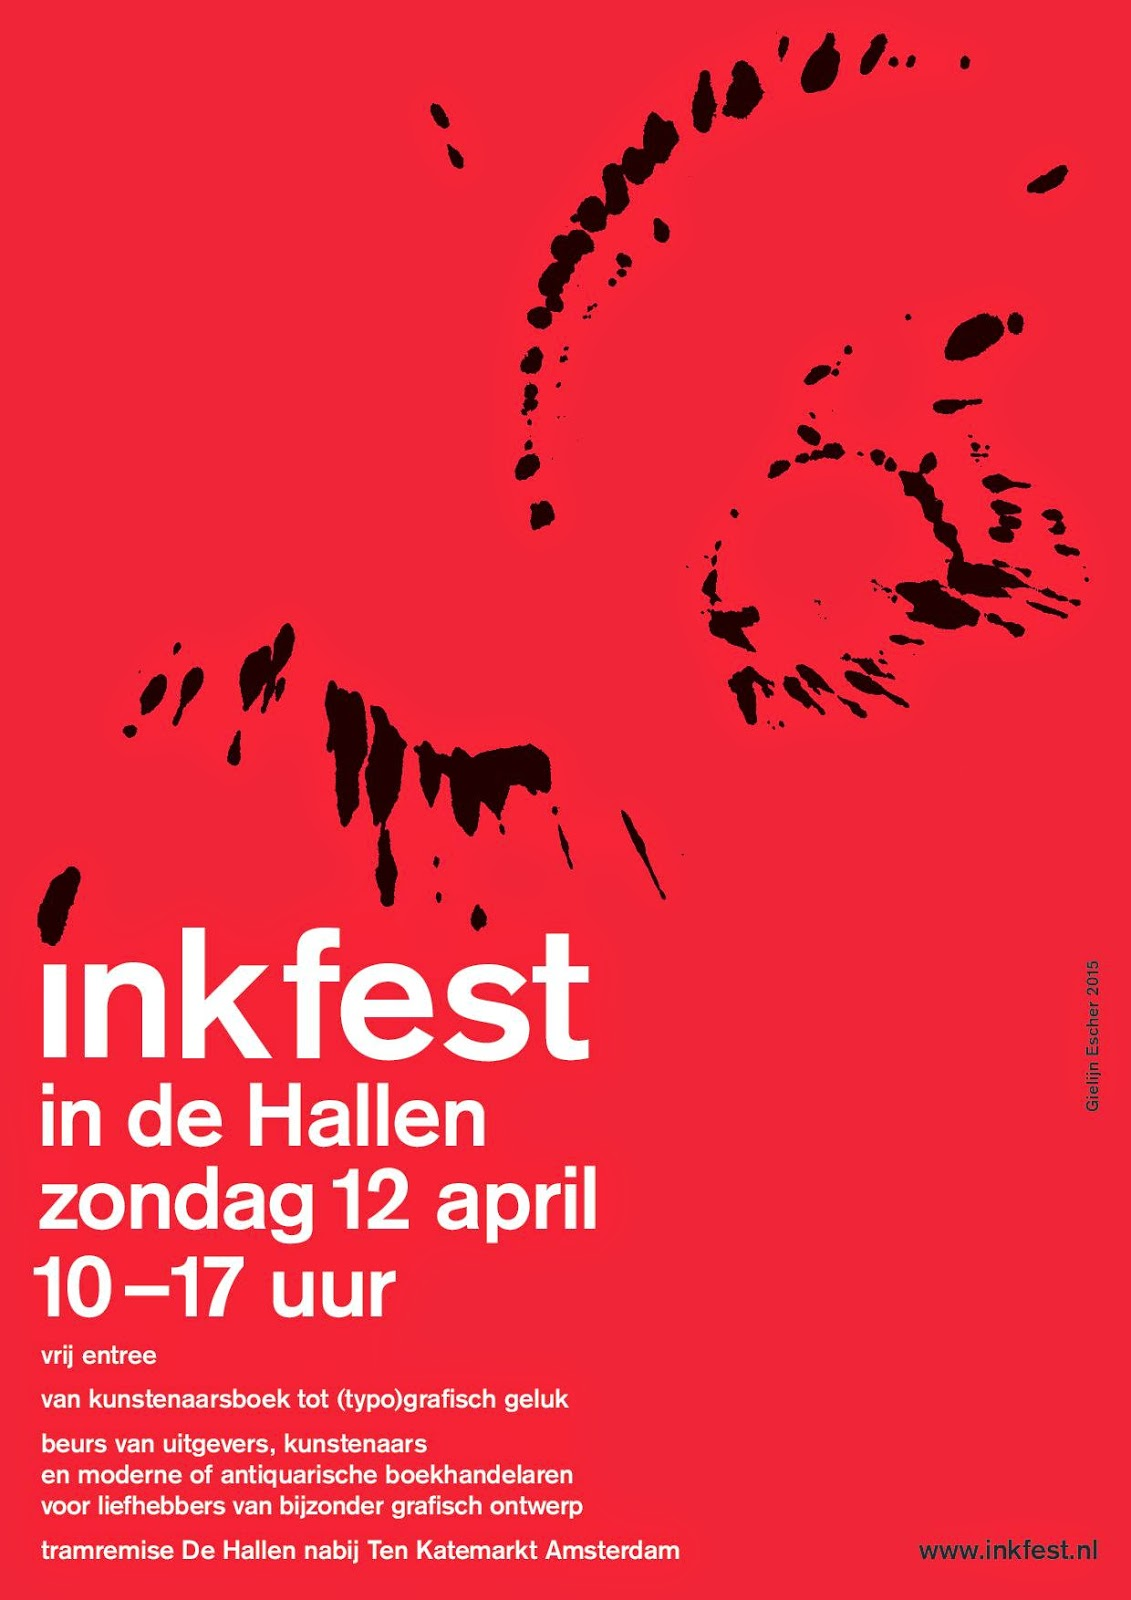 Inkfest+a4+voorkant